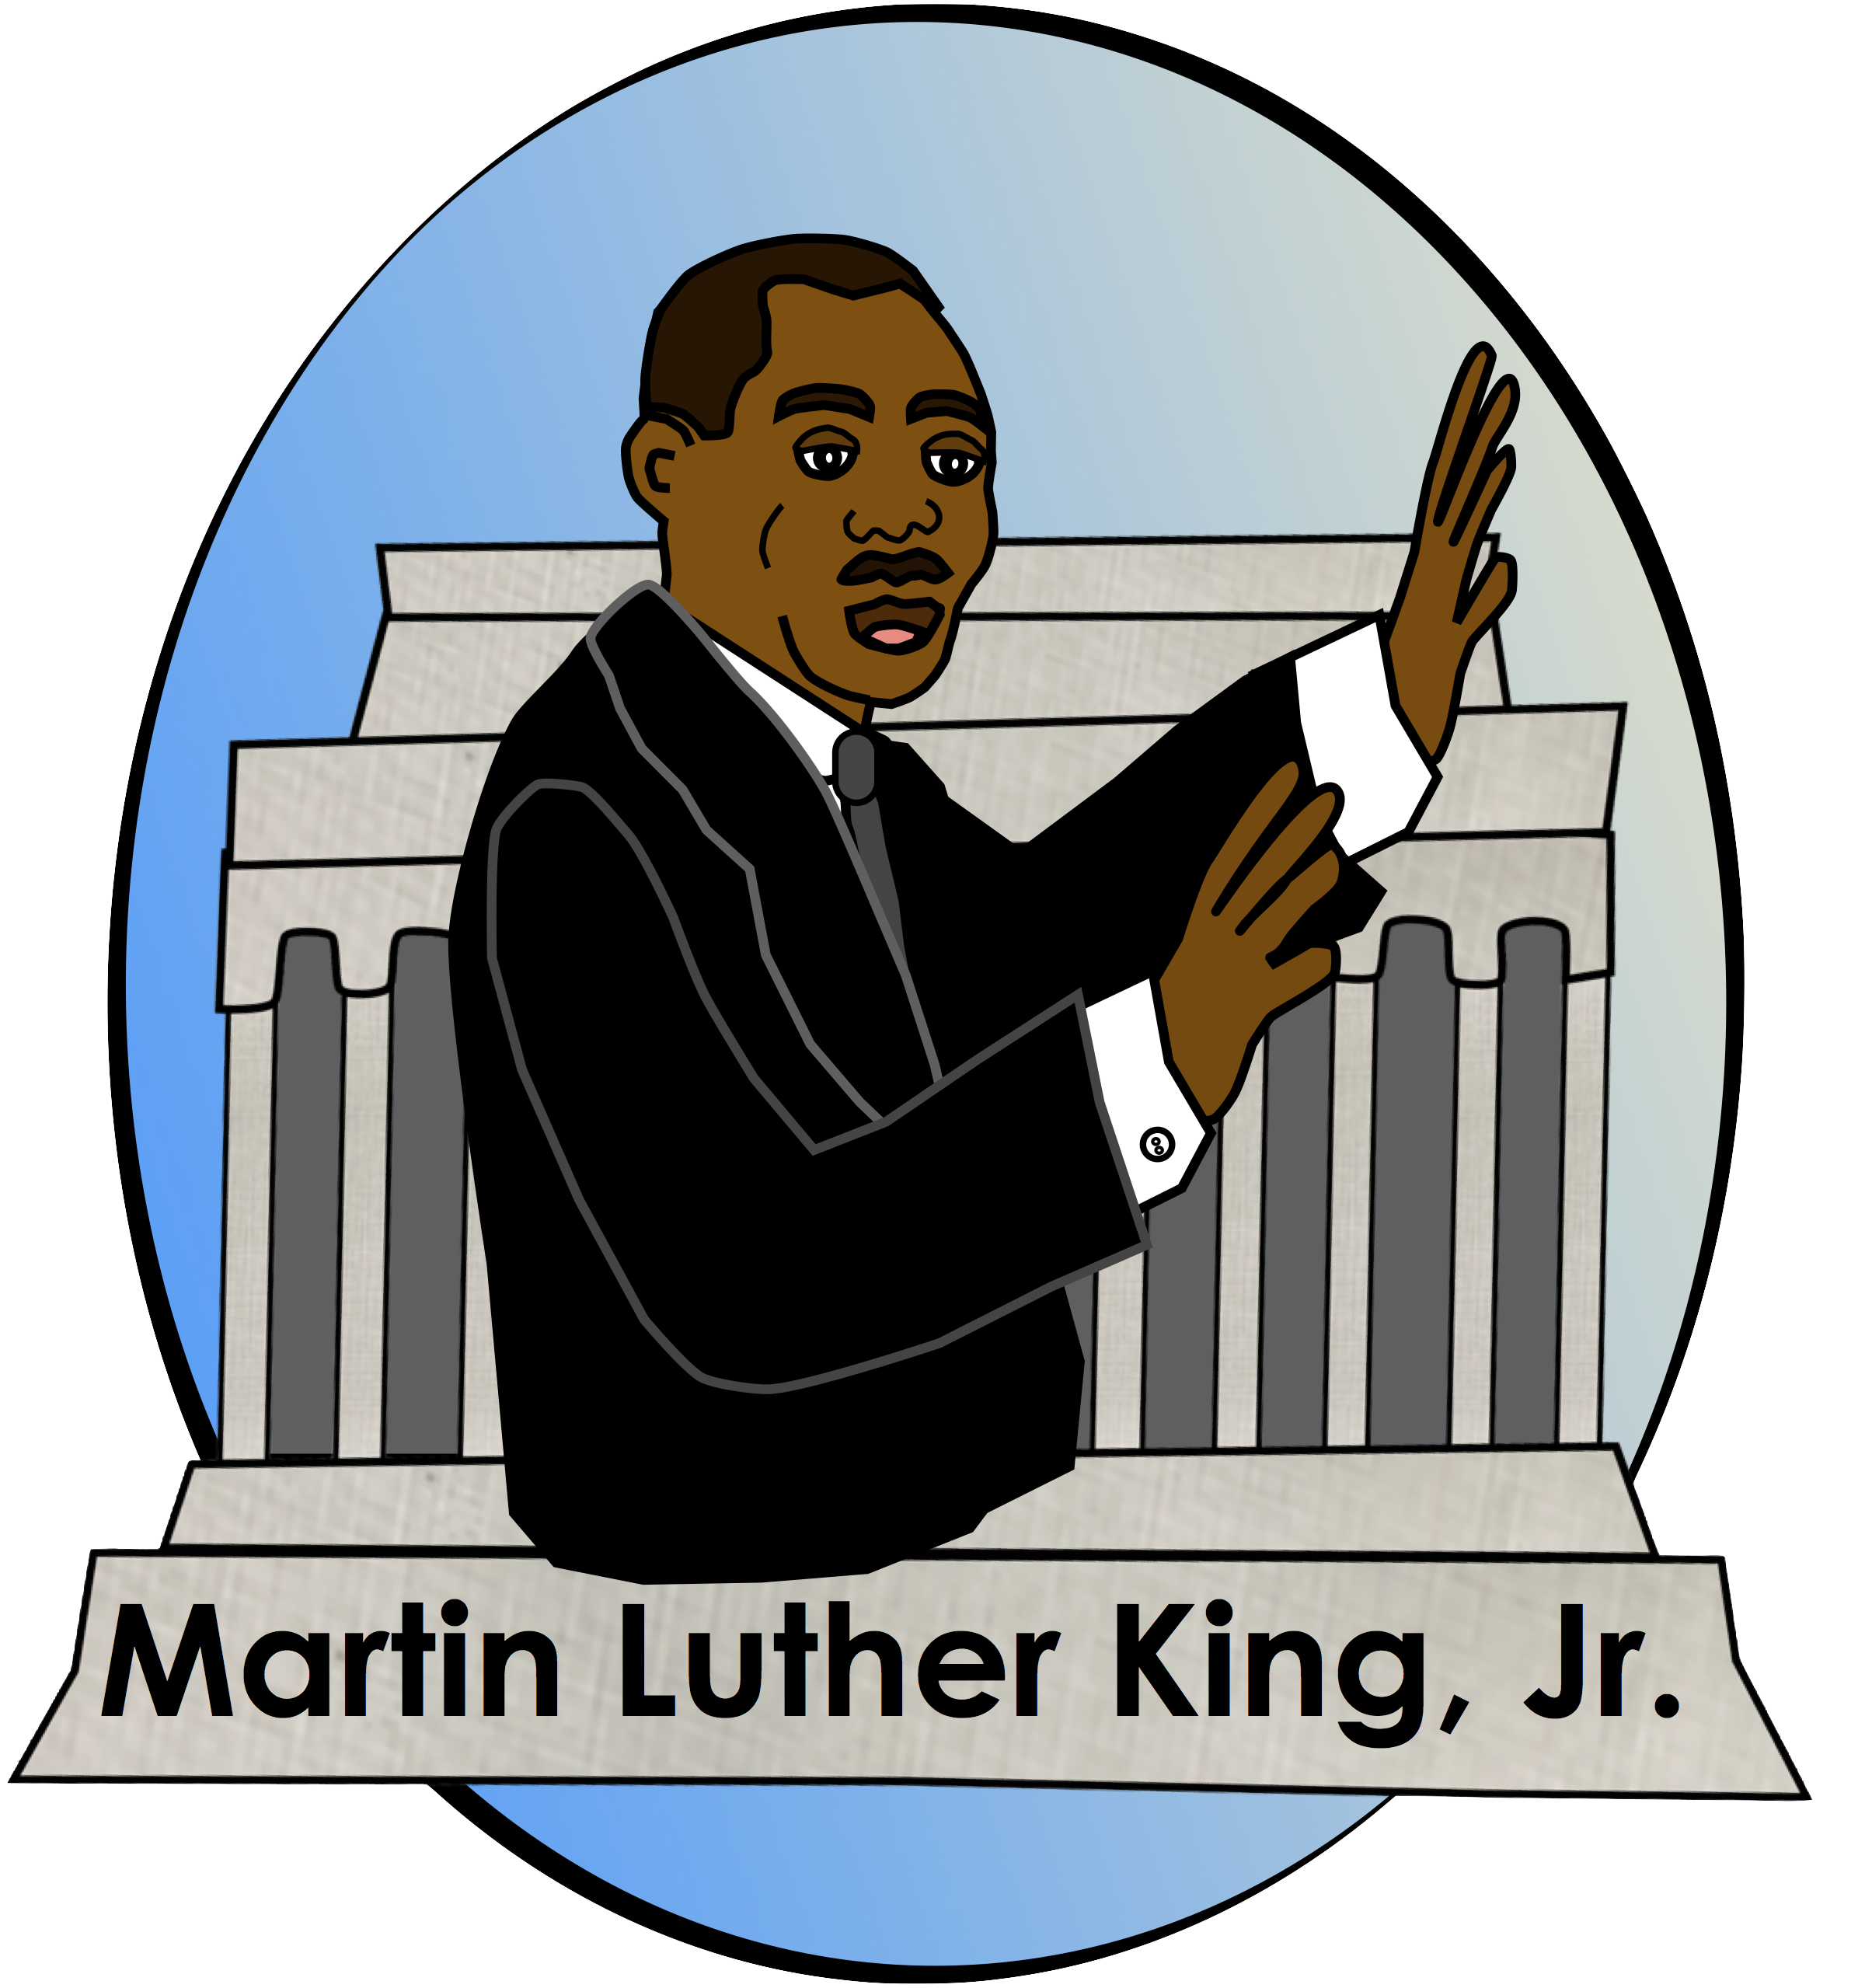 free martin luther king jr clip art from charlotte s clips